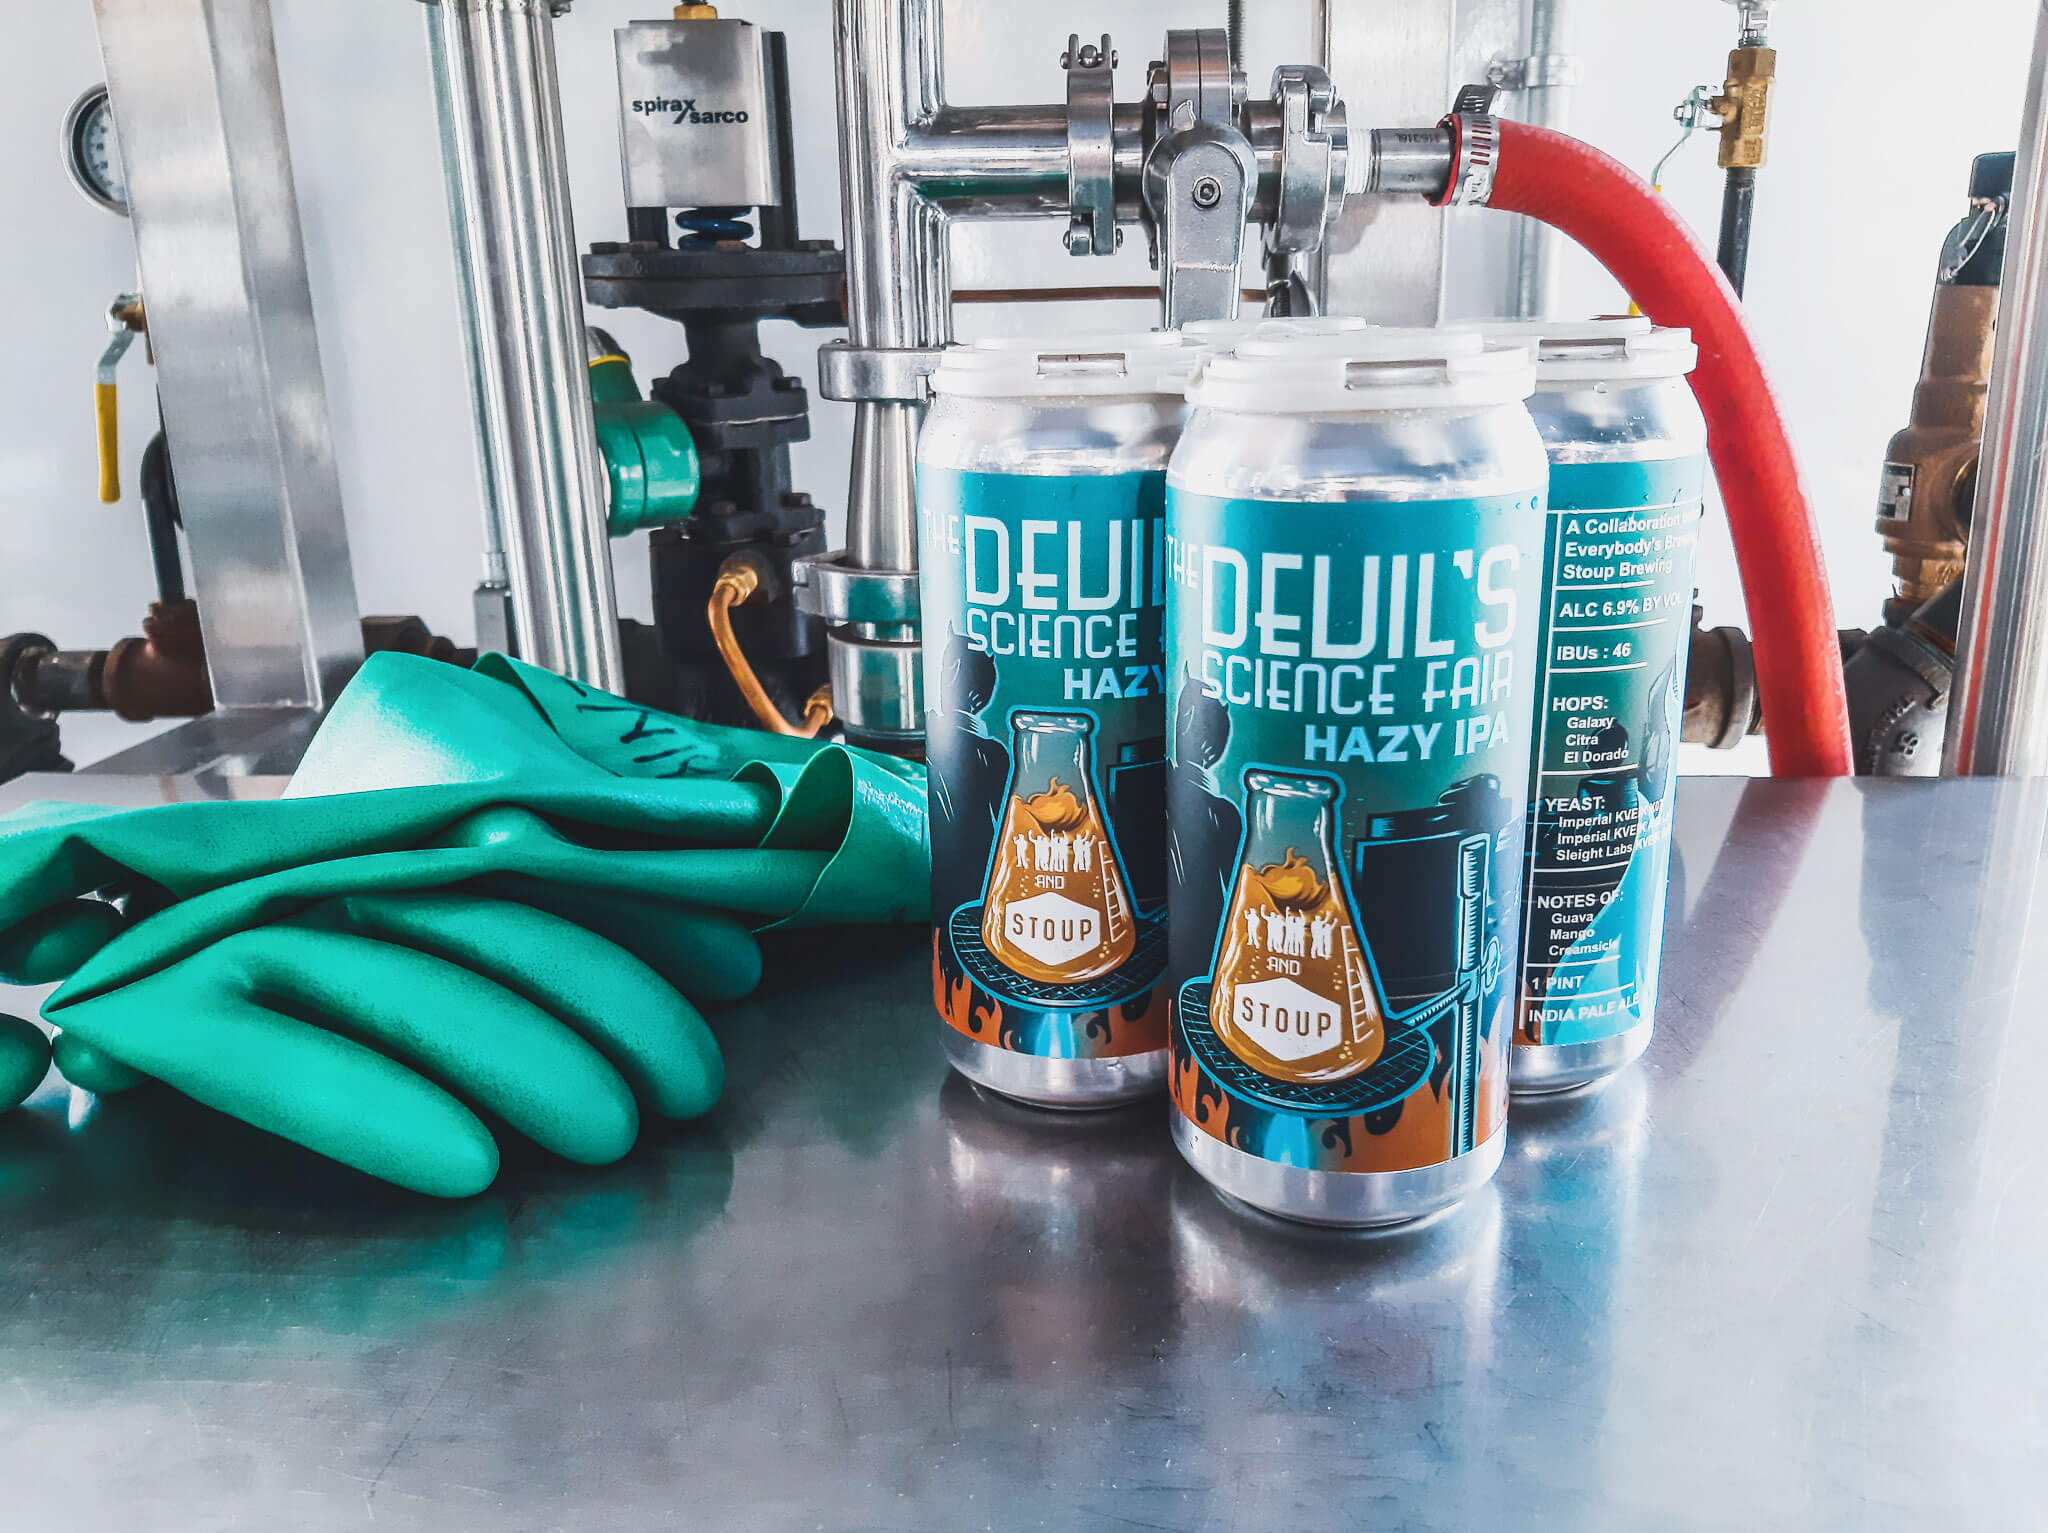 Everybody's Brewing and Stoup Brewing have collaborated on The Devil's Science Fair Hazy IPA, now available in 16 oz. cans throughout Washington and Oregon.